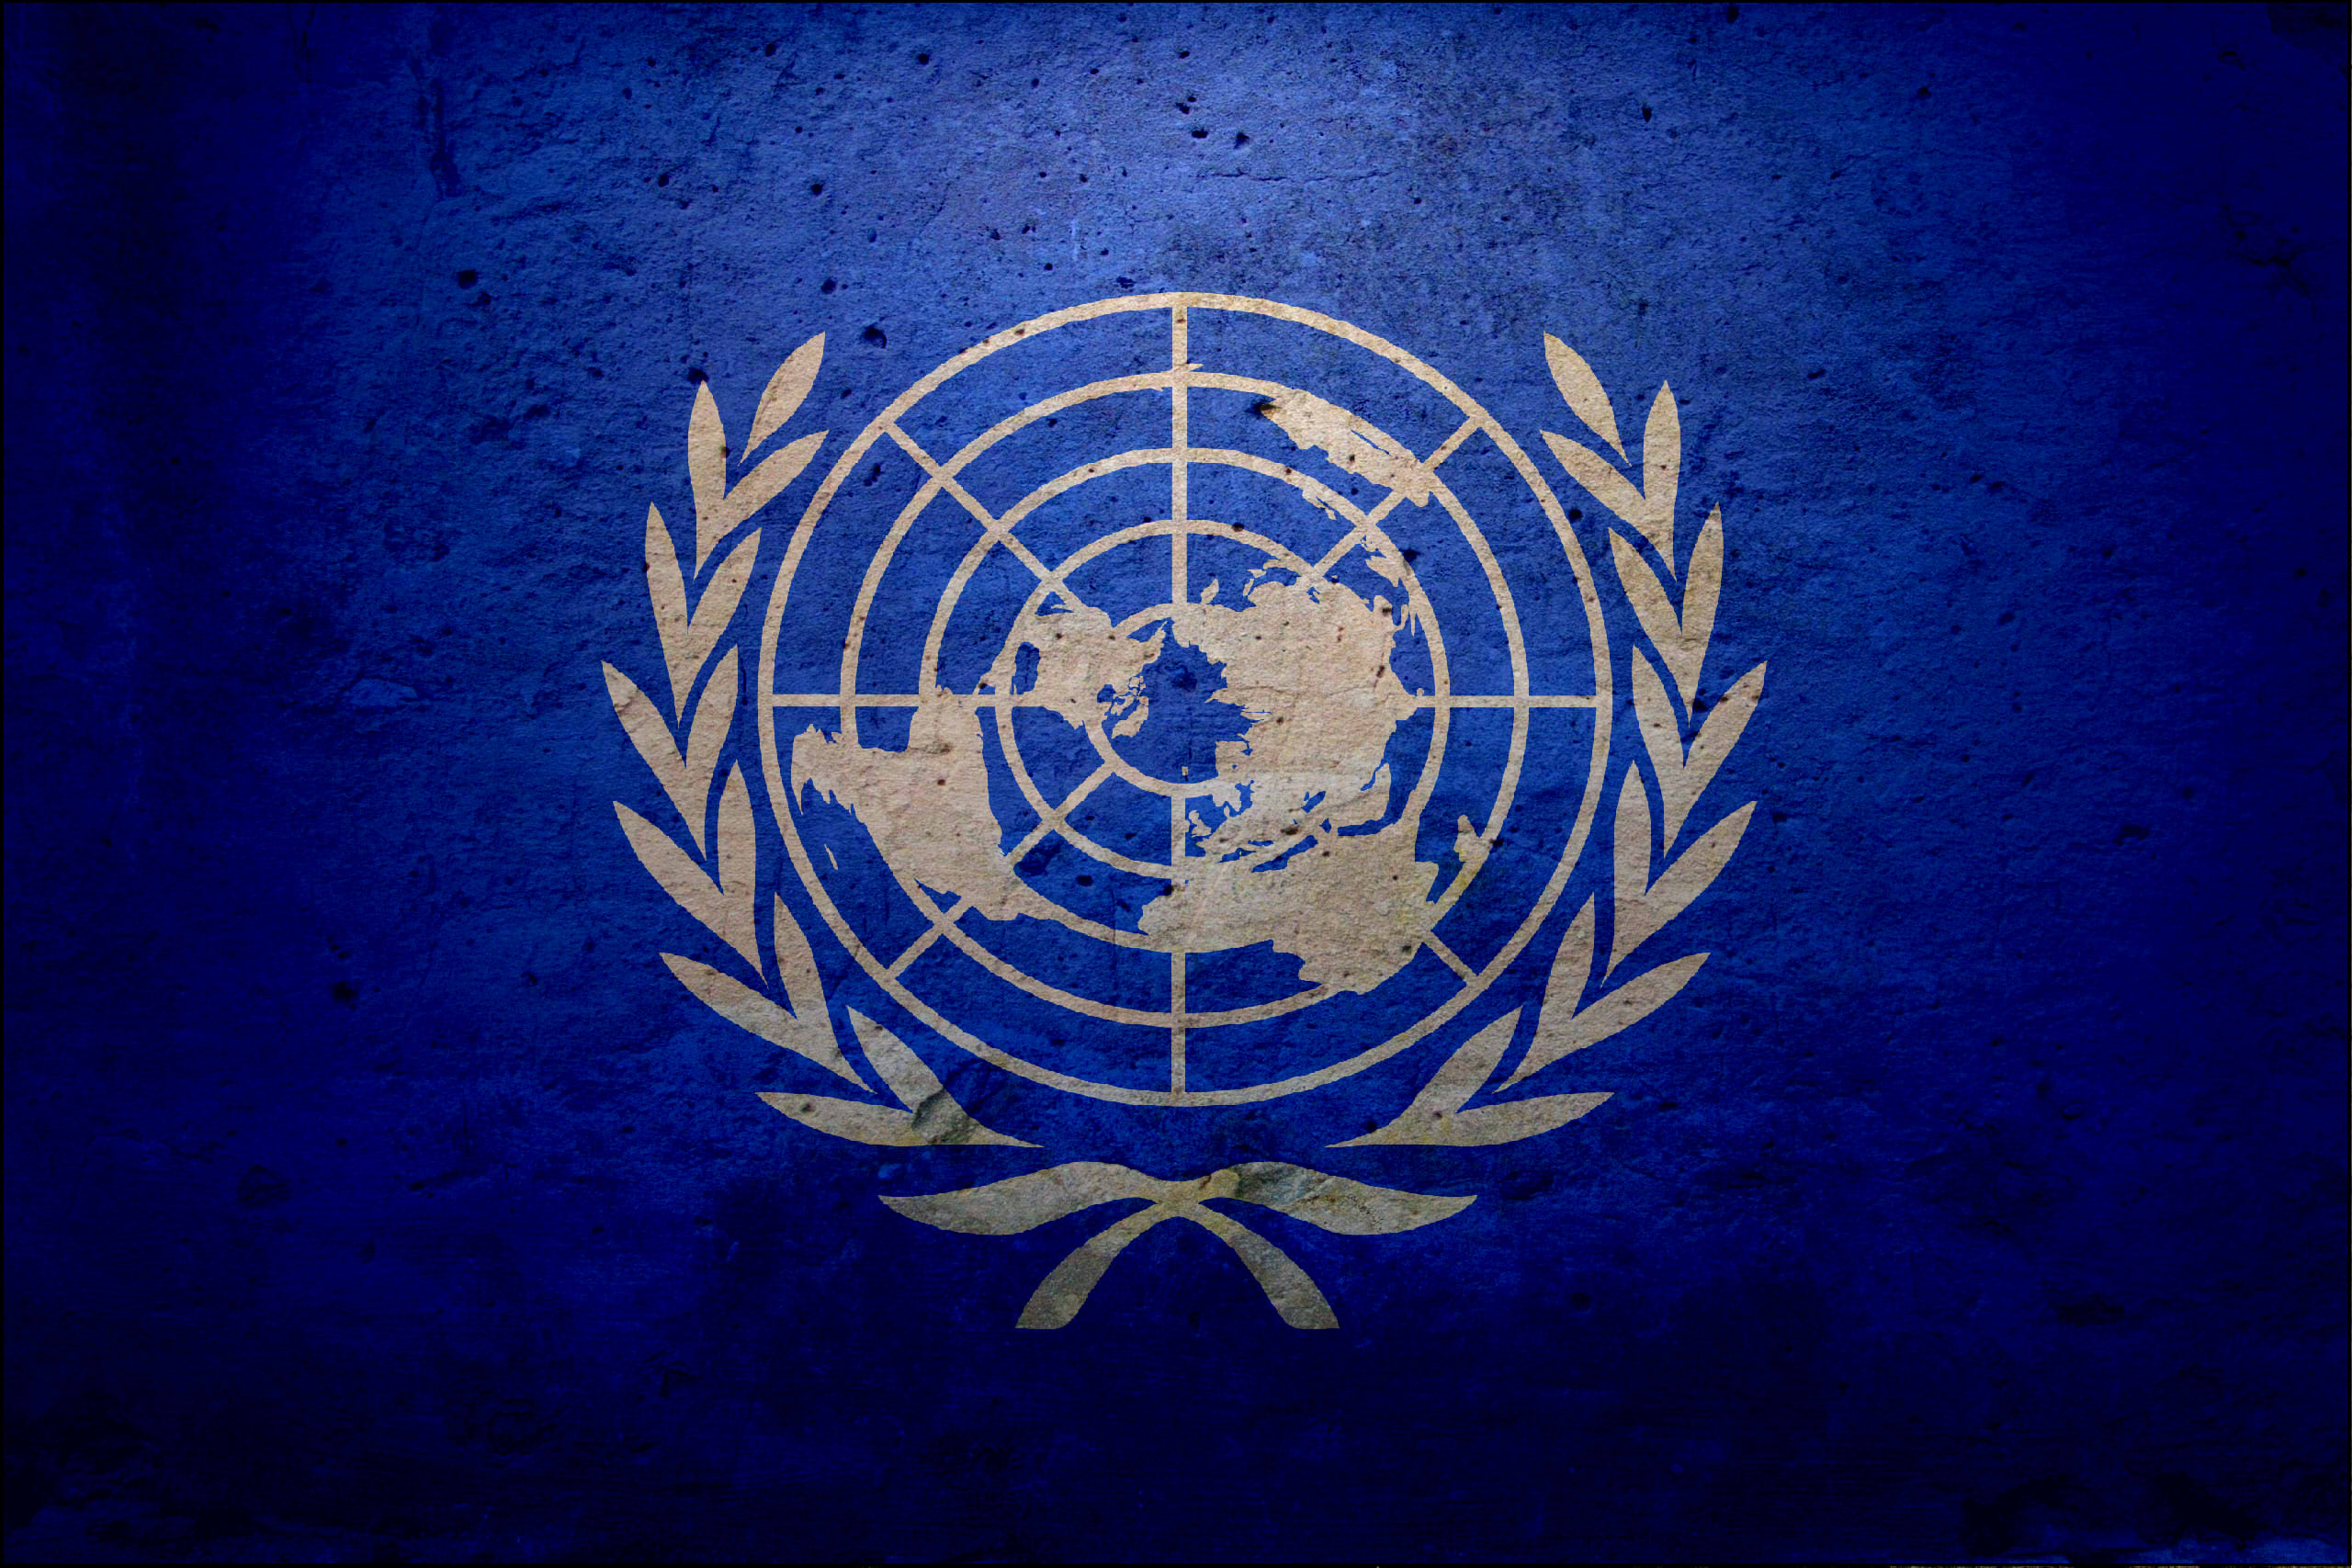 united nations hd wallpaper 186969   United Nations Association in 2560x1707